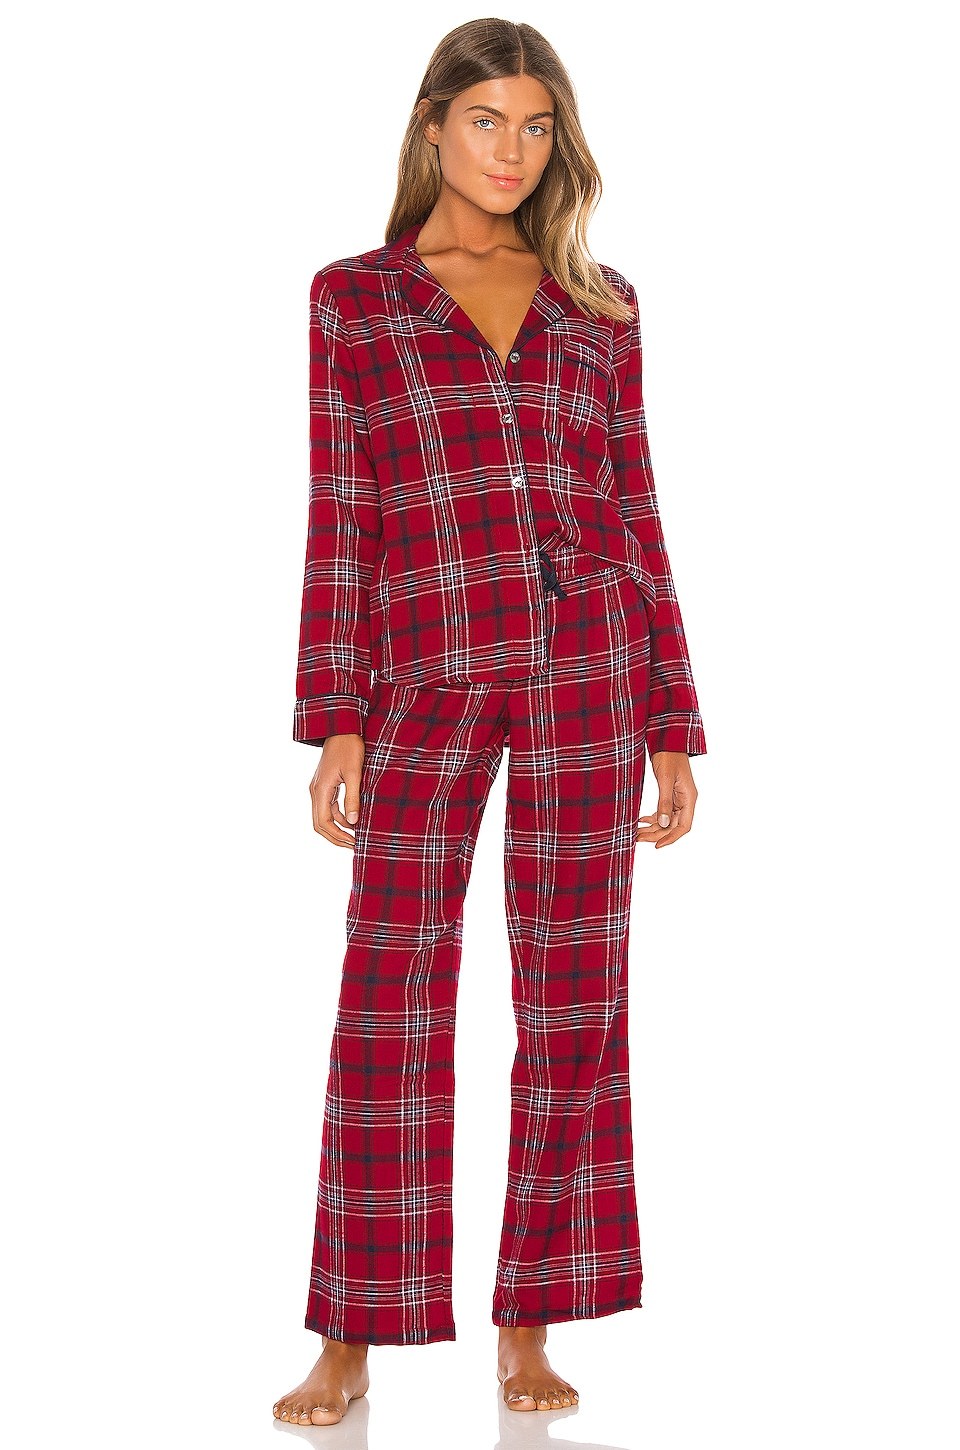 UGG Raven Set Flannel Pajamas in Chili Pepper Plaid